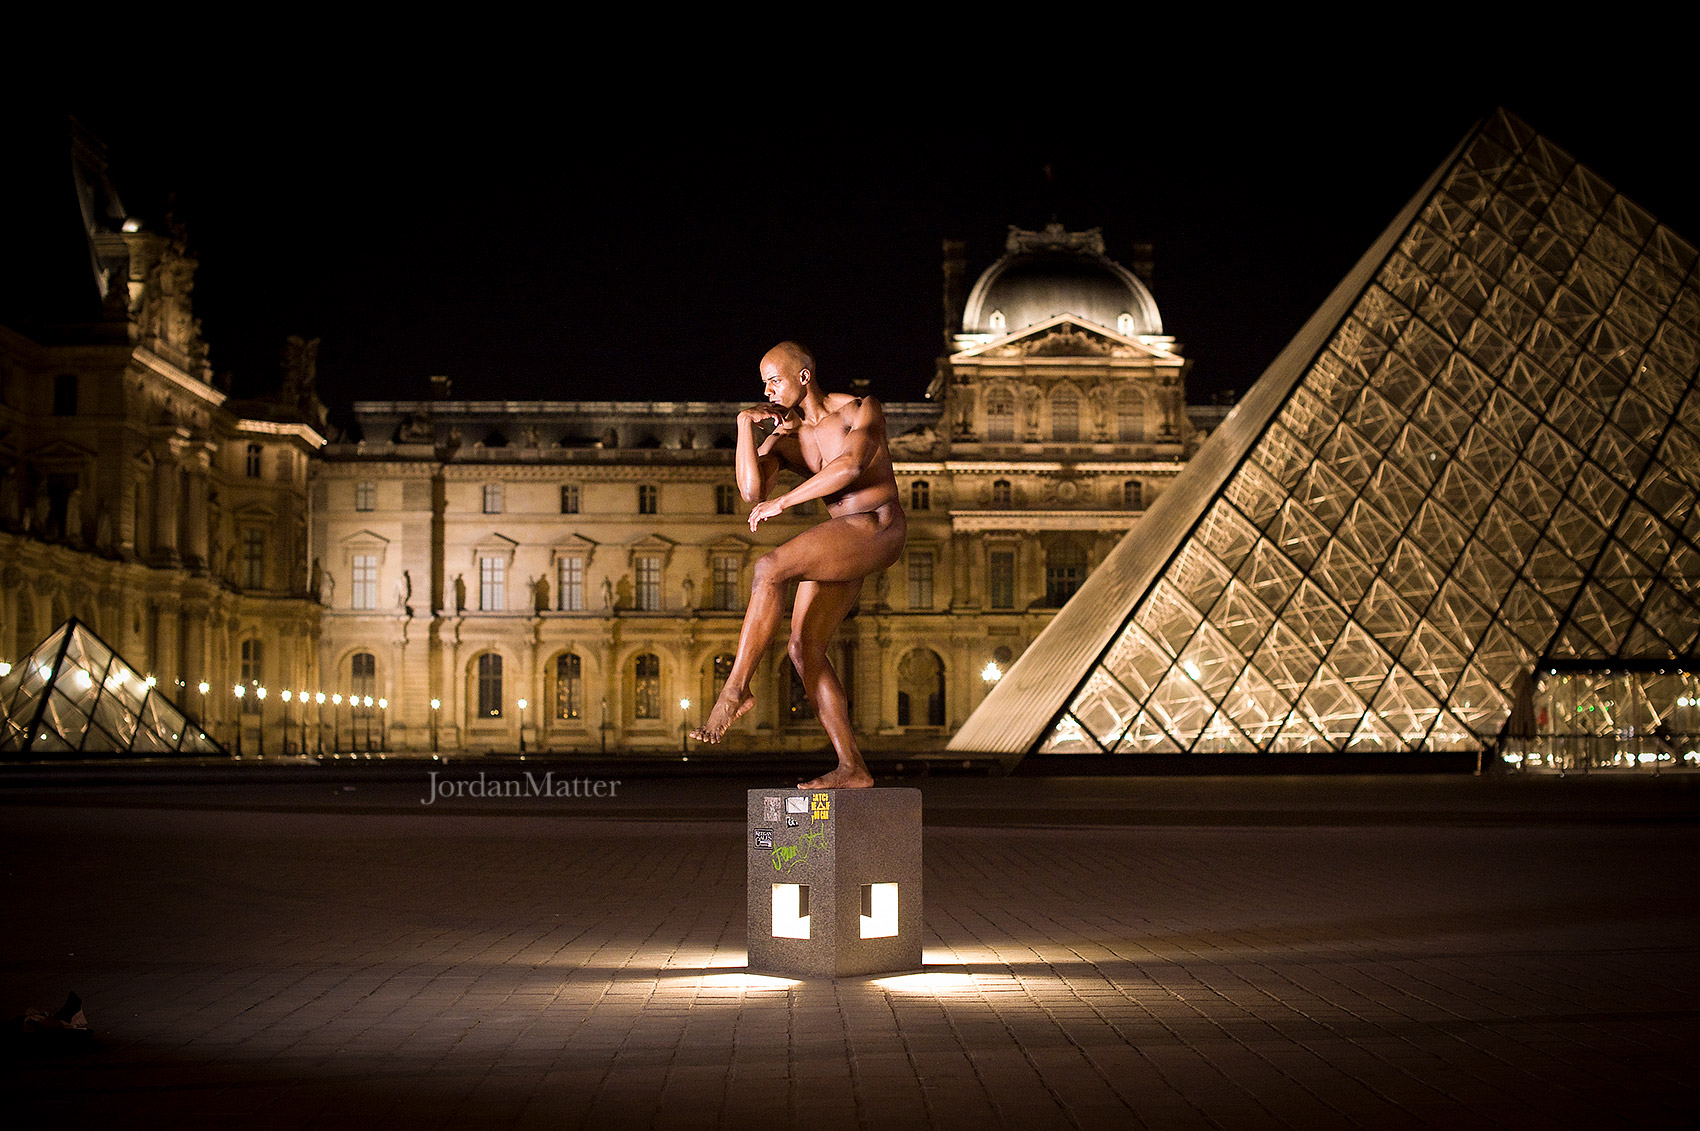 Jordan Matter collin-hayward-dancers-after-dark-paris-12am37